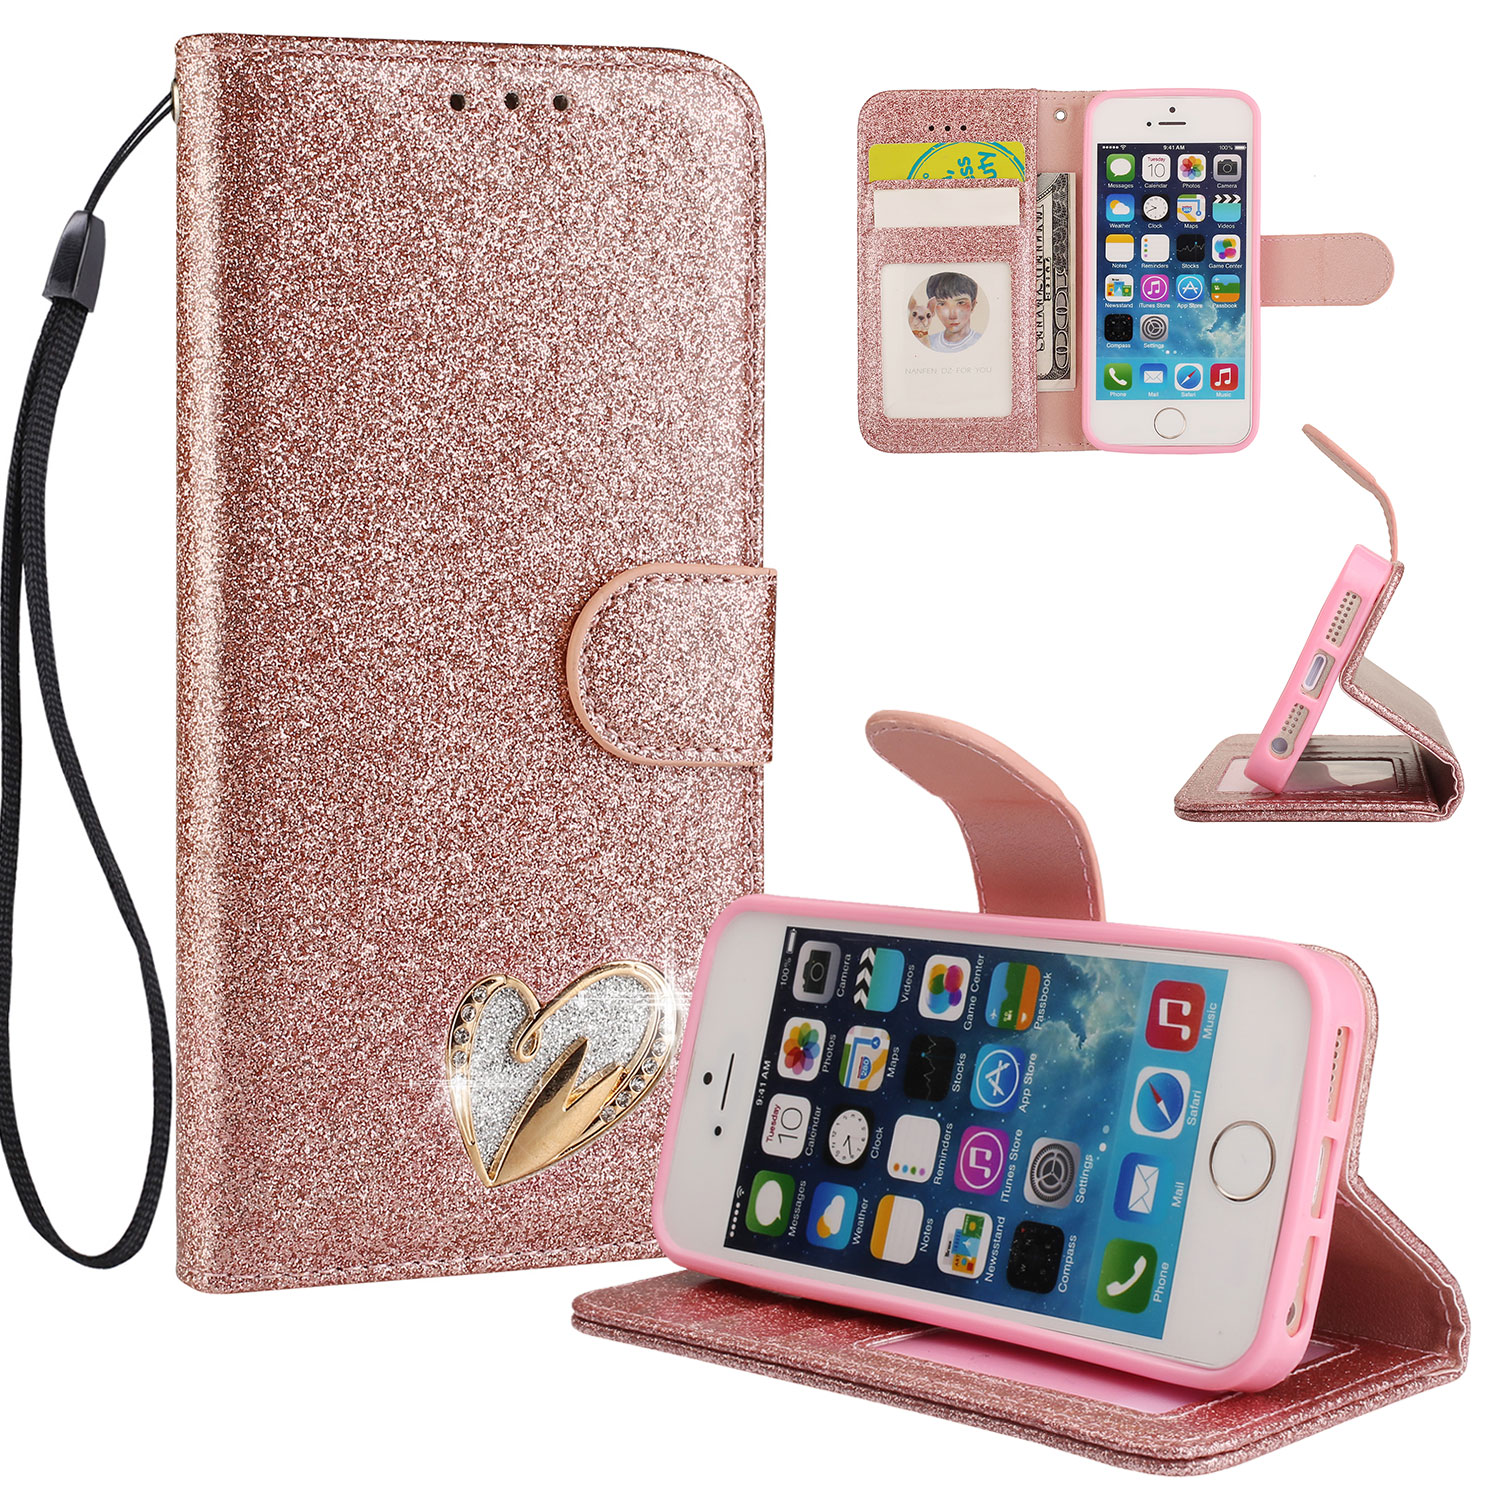 iPhone 5 5S Case Wallet, iPhone SE Case, Allytech Glitter Folio Kickstand with Wristlet Lanyard Shiny Sparkle Luxury Bling Card Slots Slim Cover for Apple iPhone 5 5S SE (Rosrgold)